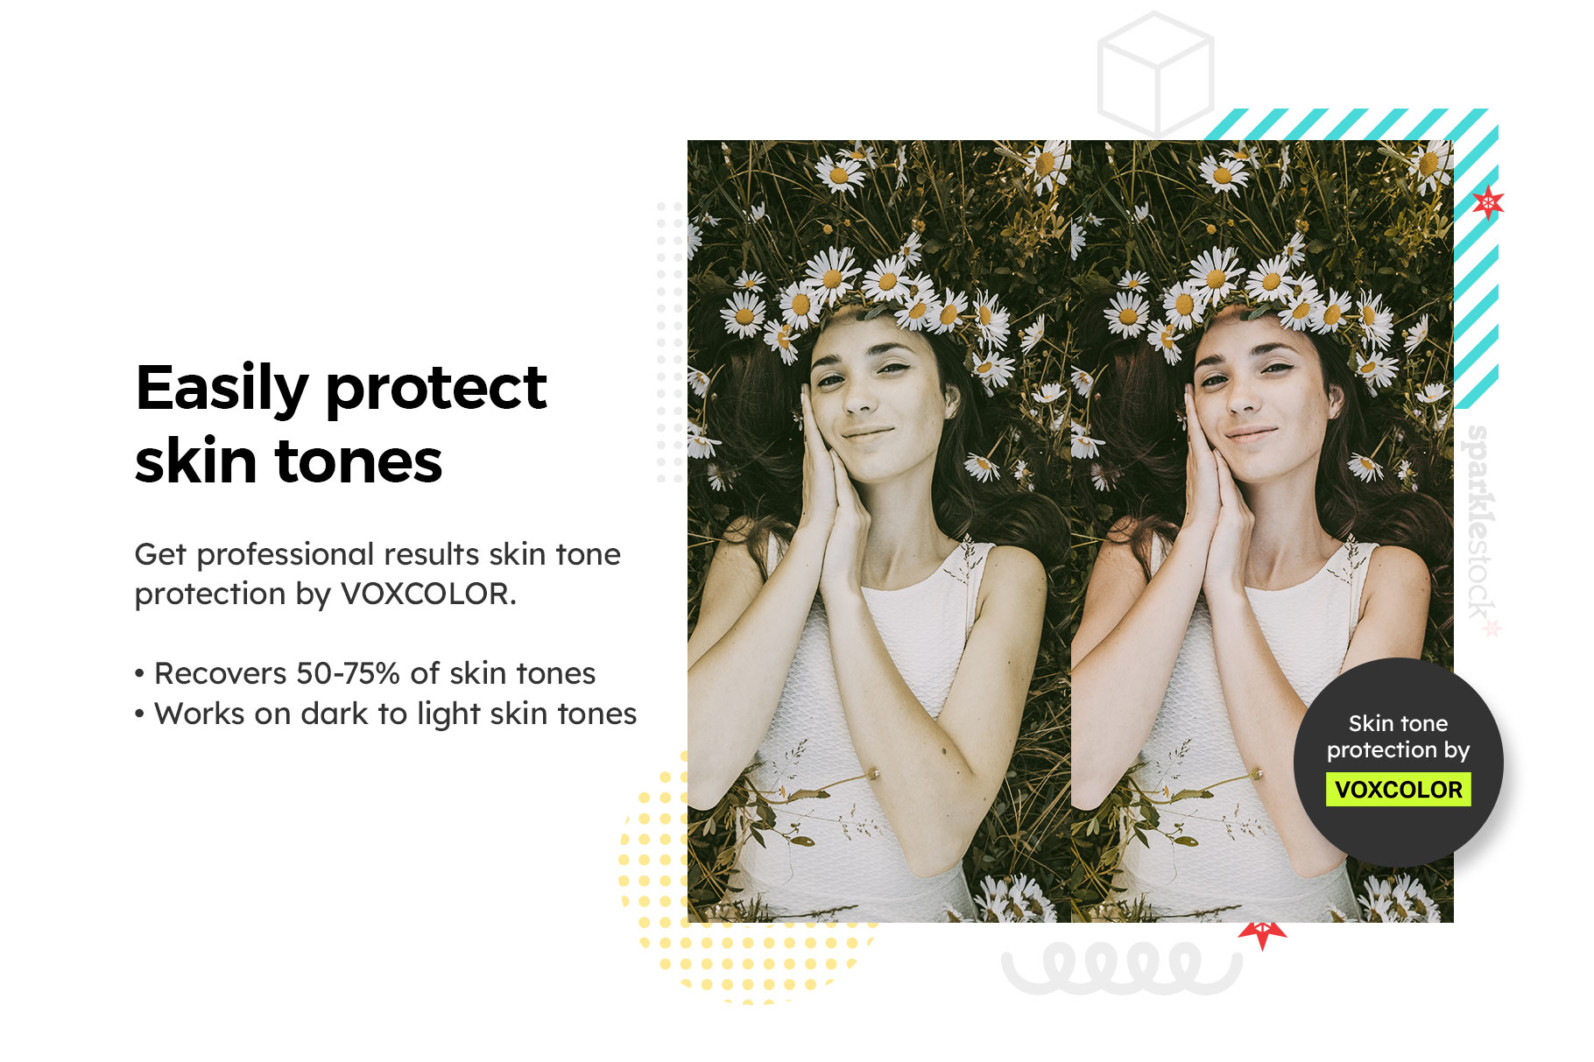 20 Chamomile Lightroom Presets and LUTs - 09 9 -